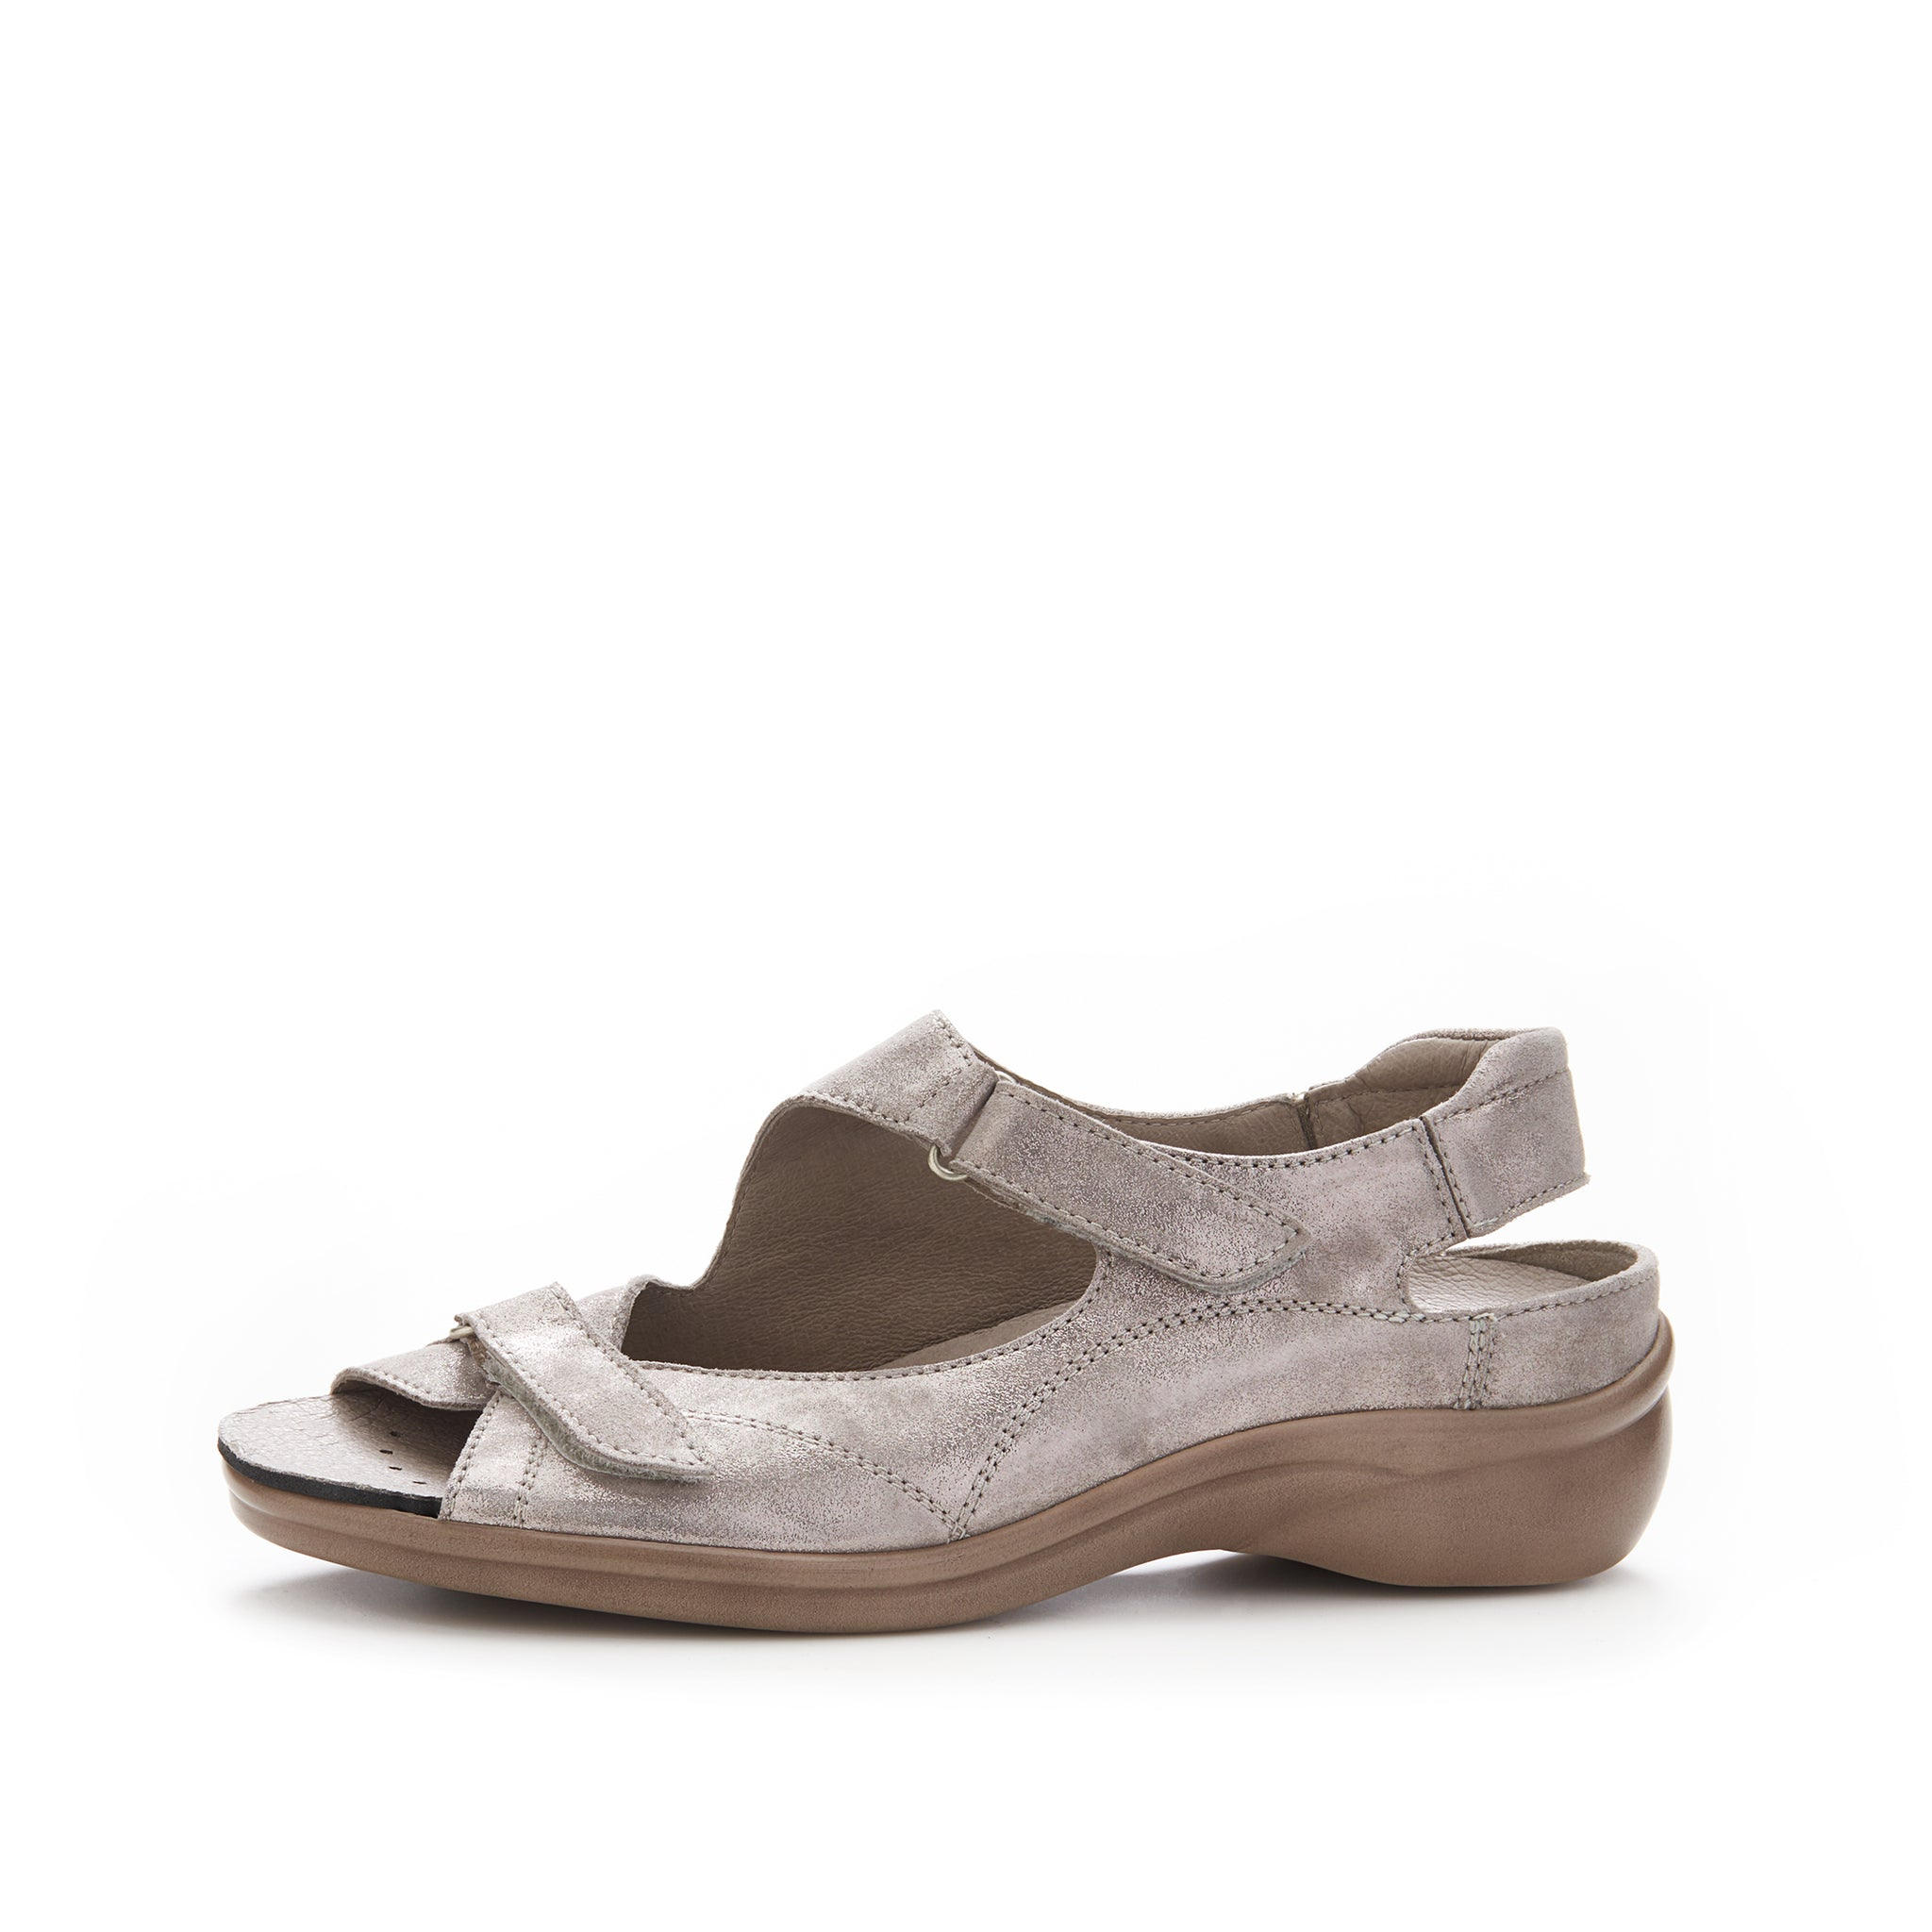 ARA MAYA 12-35472-83 G Sasso Sandale for Women with Removable Sole for OrthoticS FINAL / FINAL SALE - Shop of the Coordinator